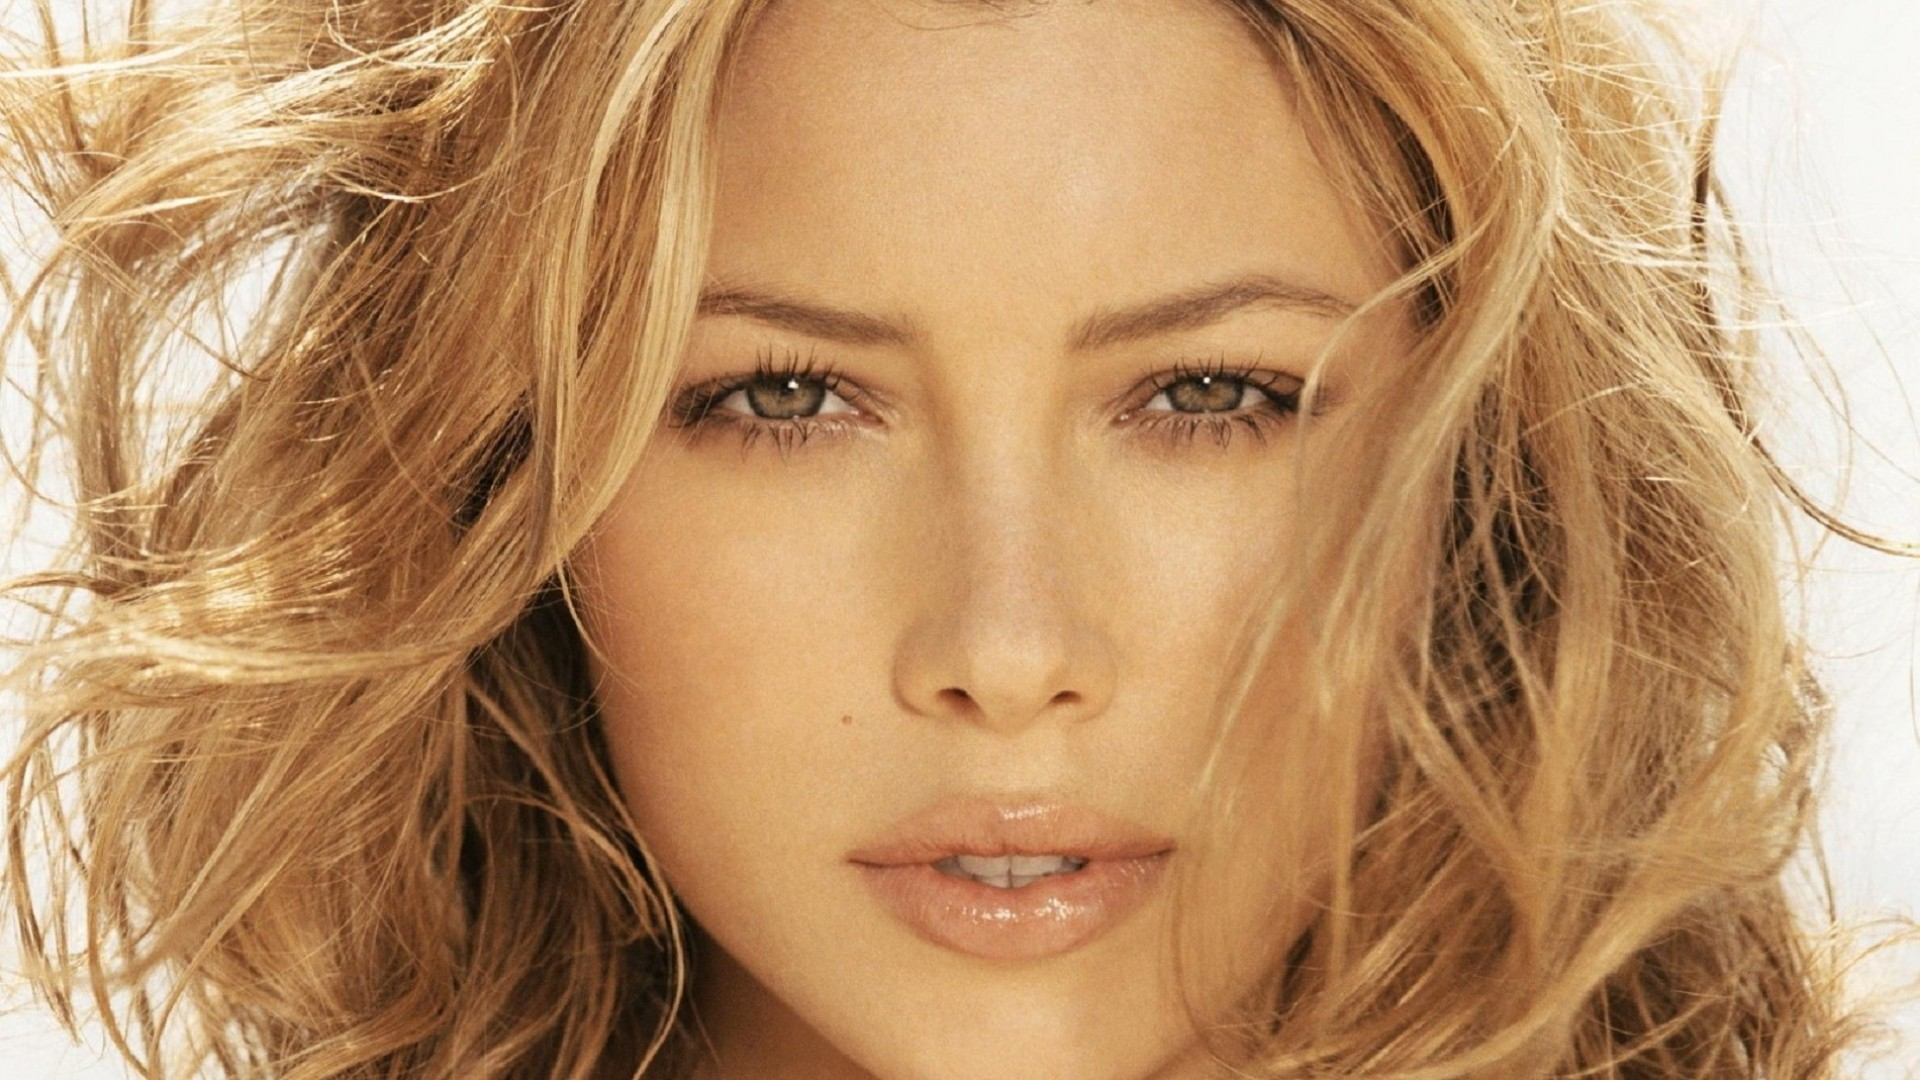 jessica biel wallpaper background